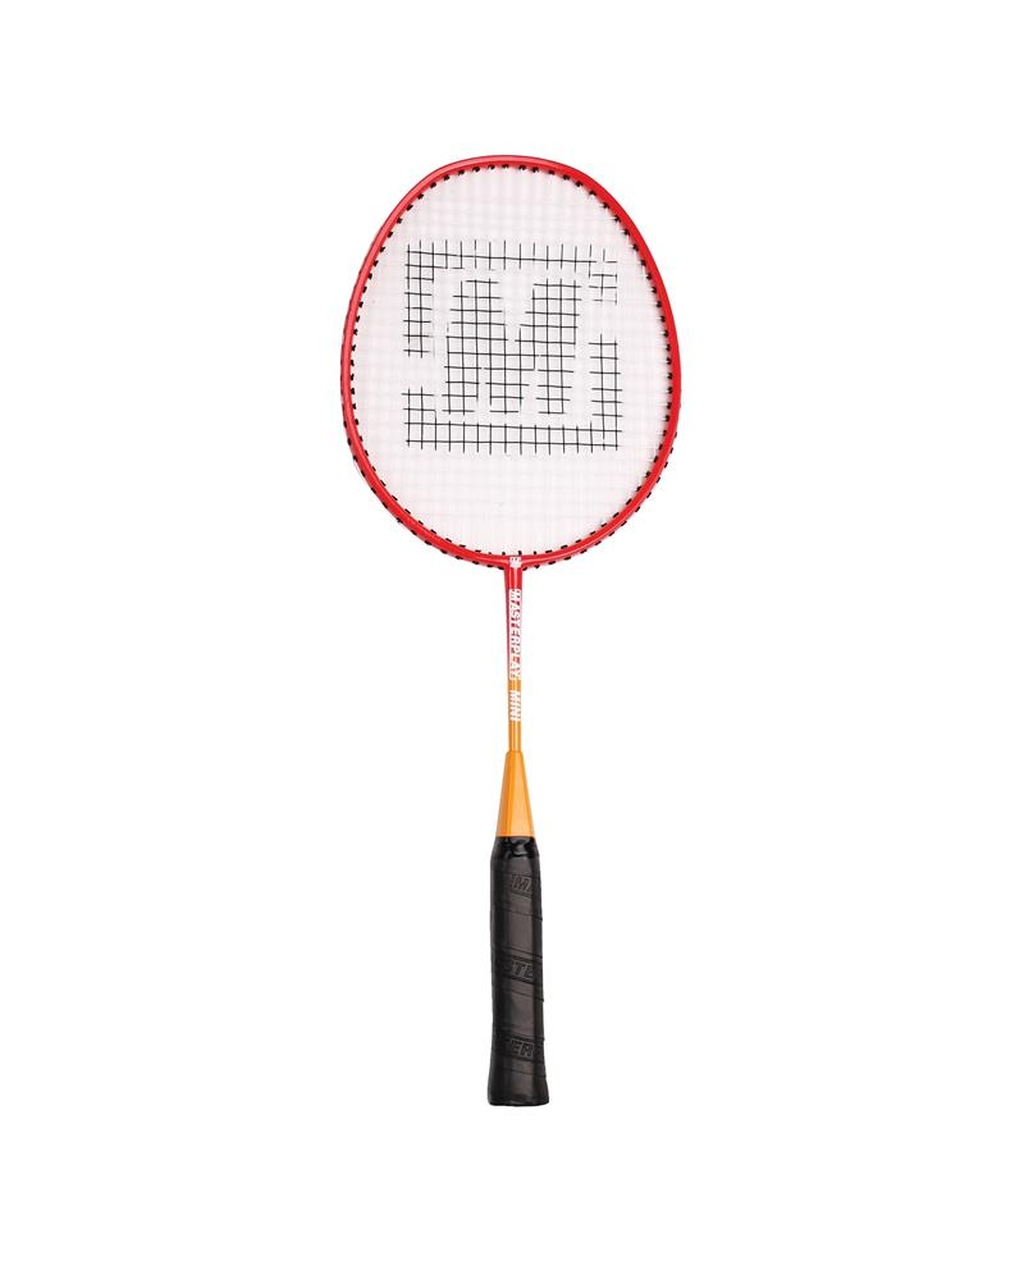 Mastersport Mini Badminton Racket